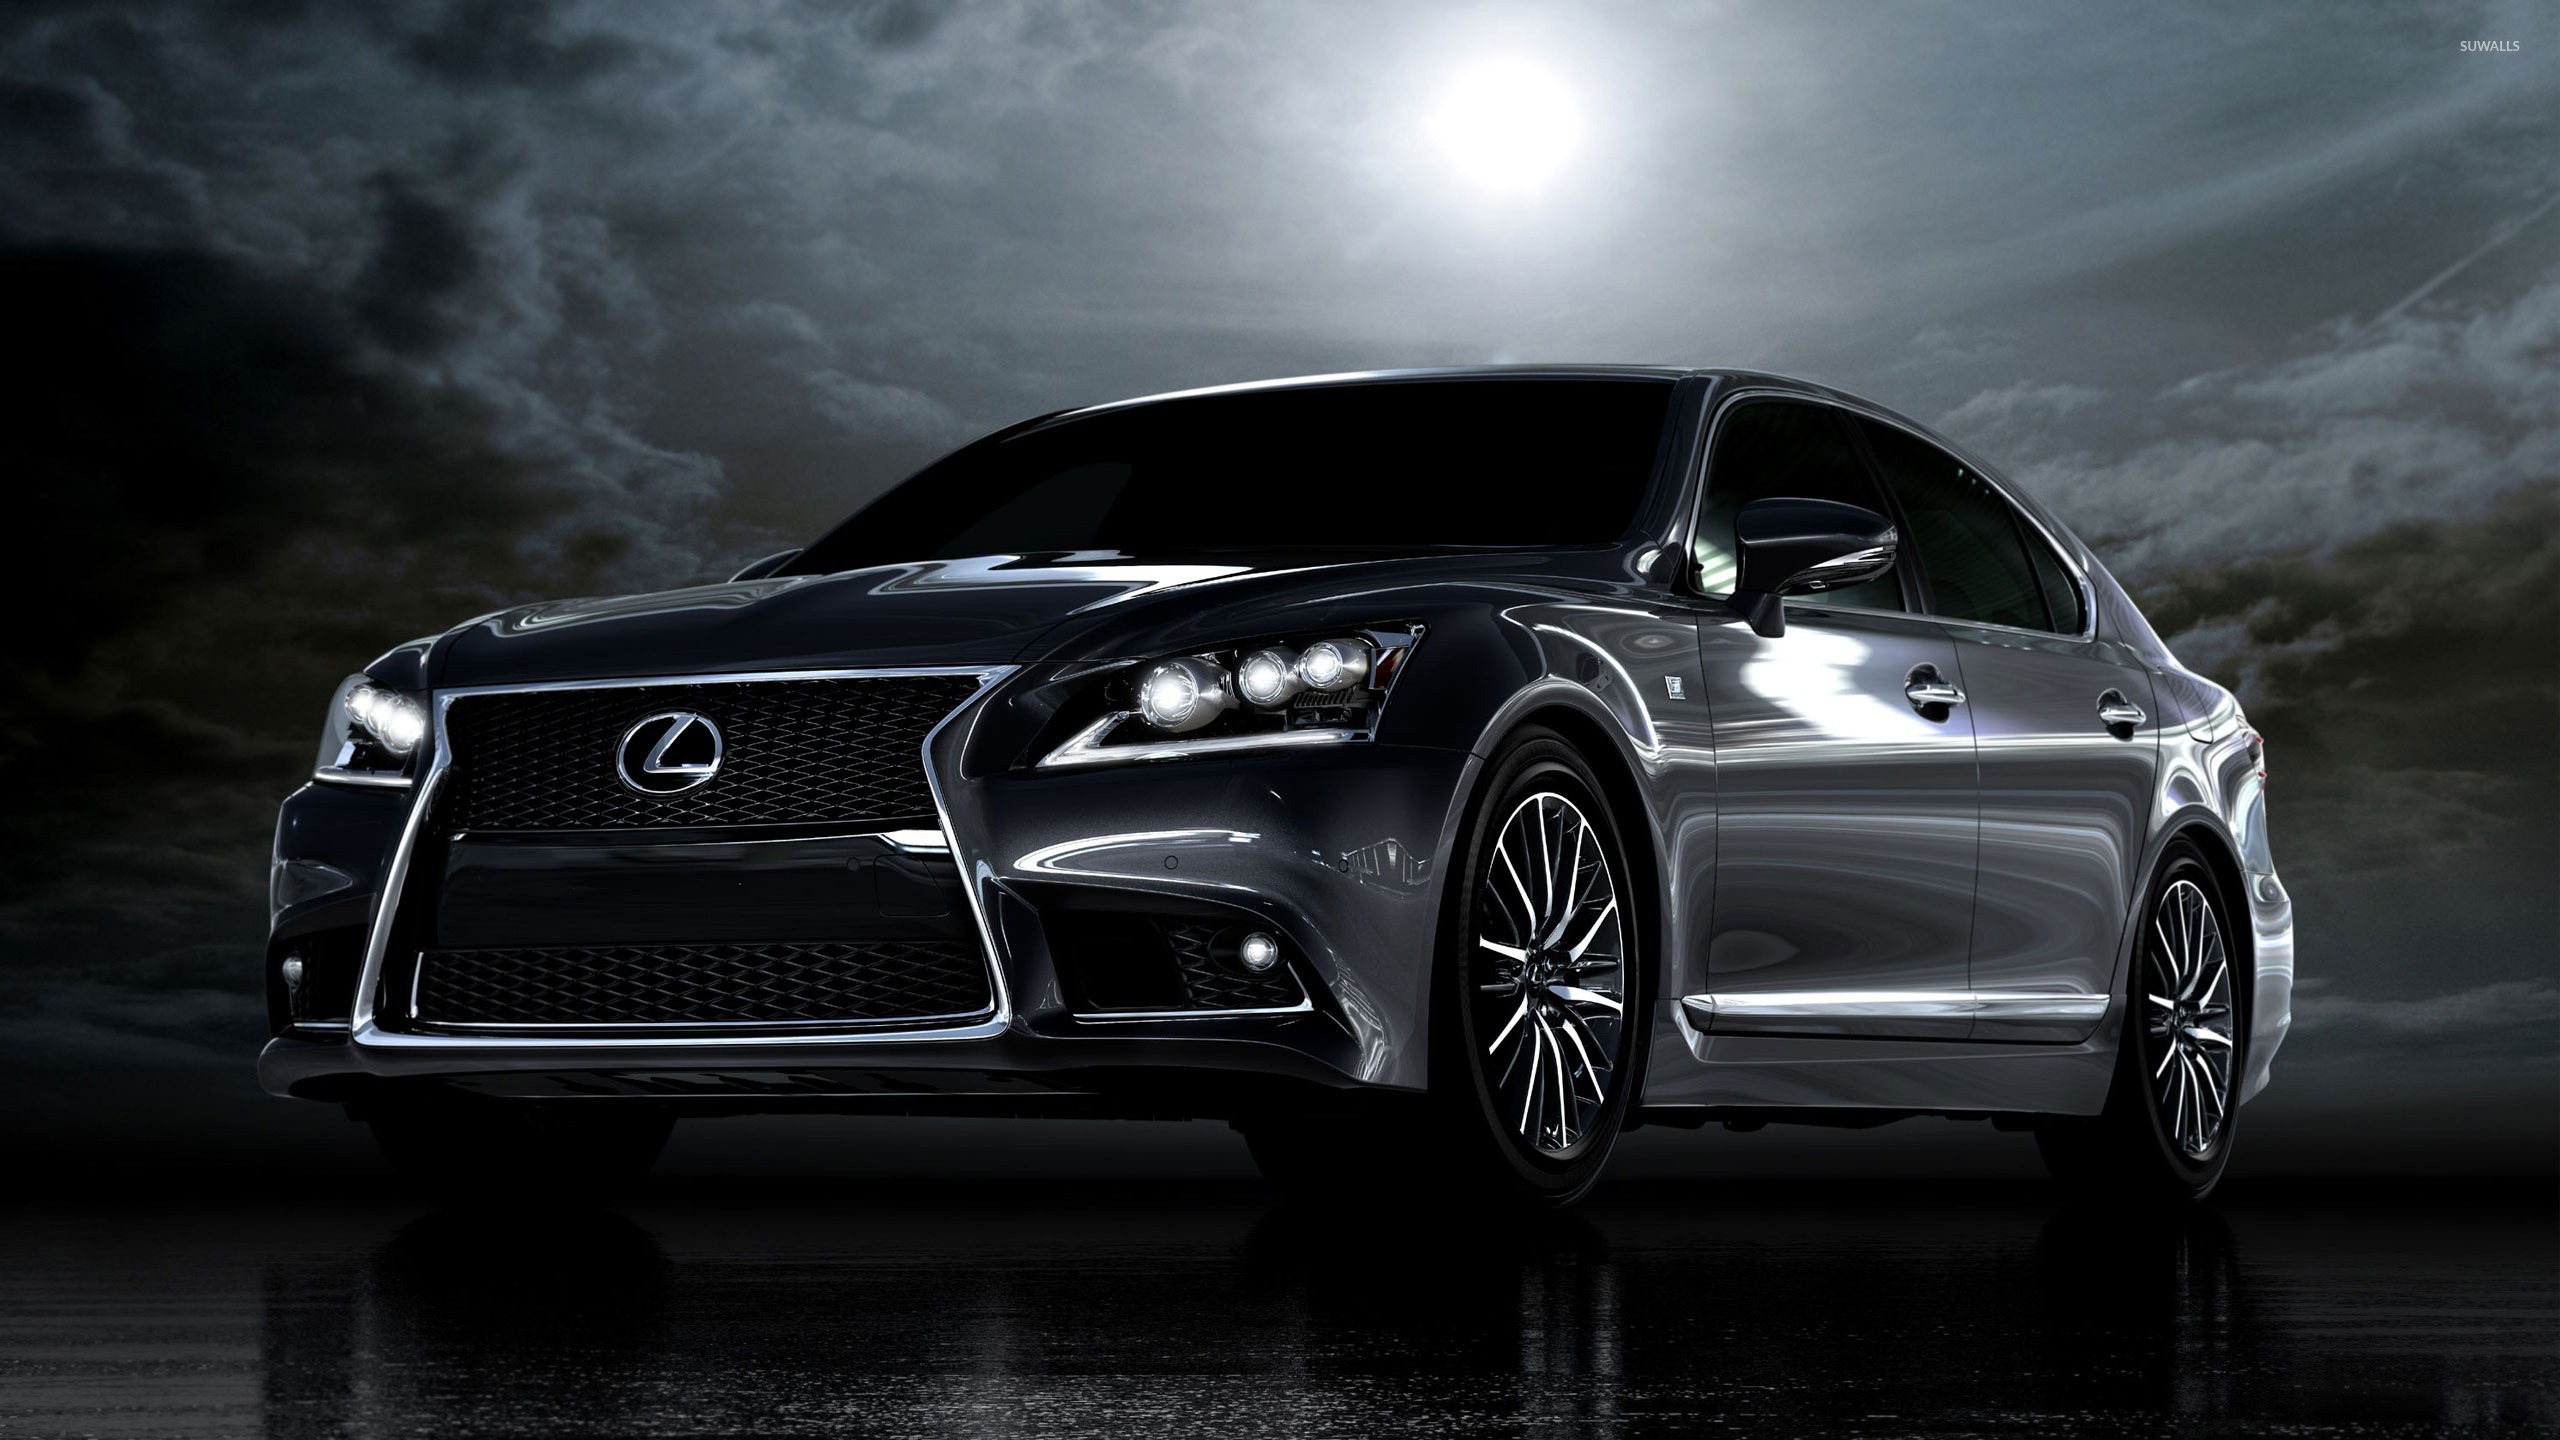 2013 Lexus LS 460 F Sport wallpaper   Car wallpapers   18285 2560x1440